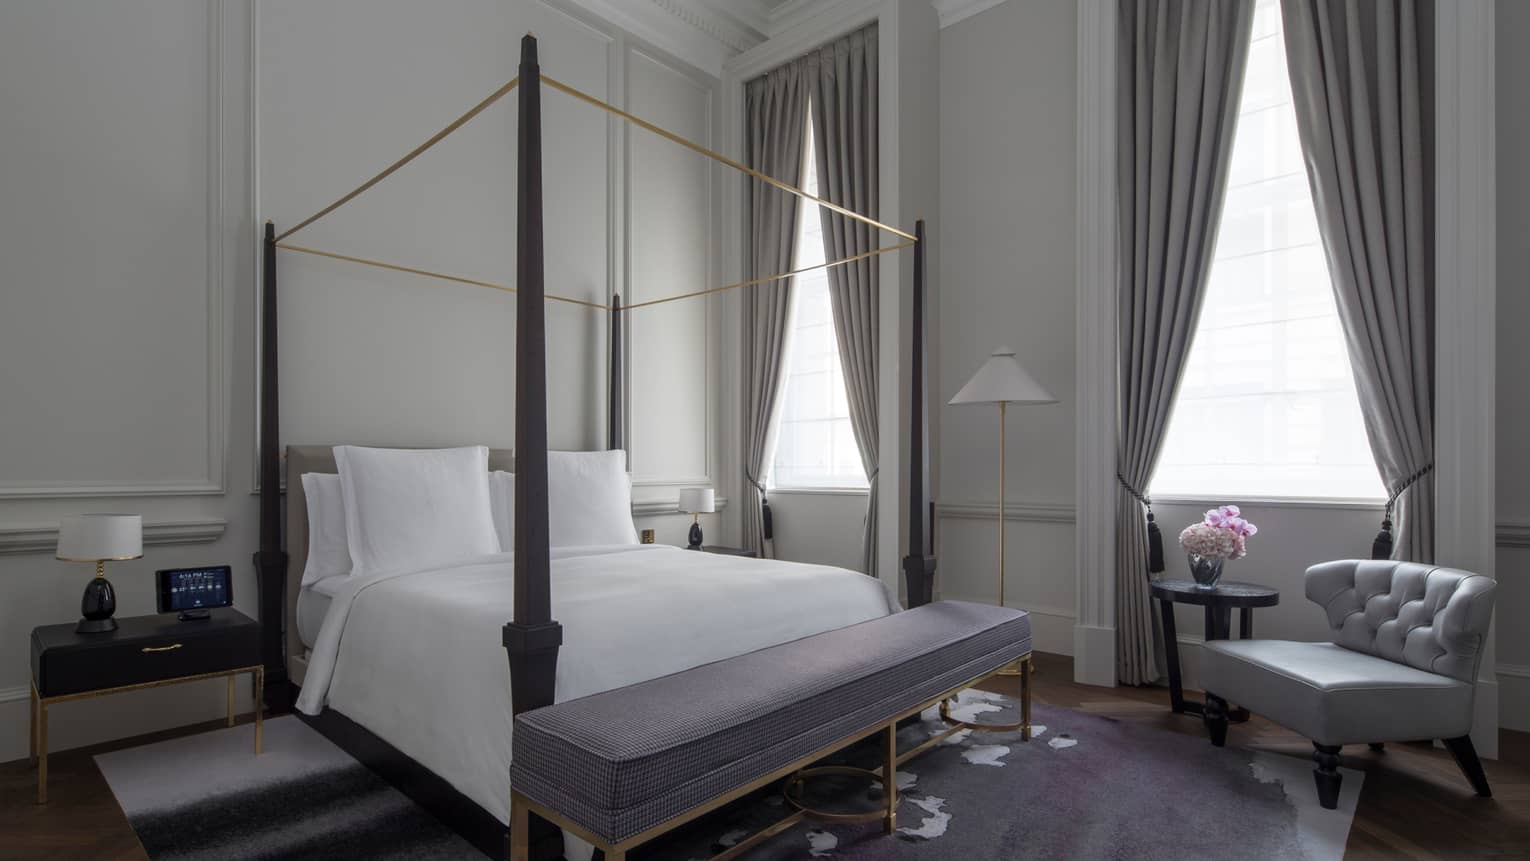 Grand Heritage Suite bed with canopy bed, padded bench, high ceilings, white walls with original columns